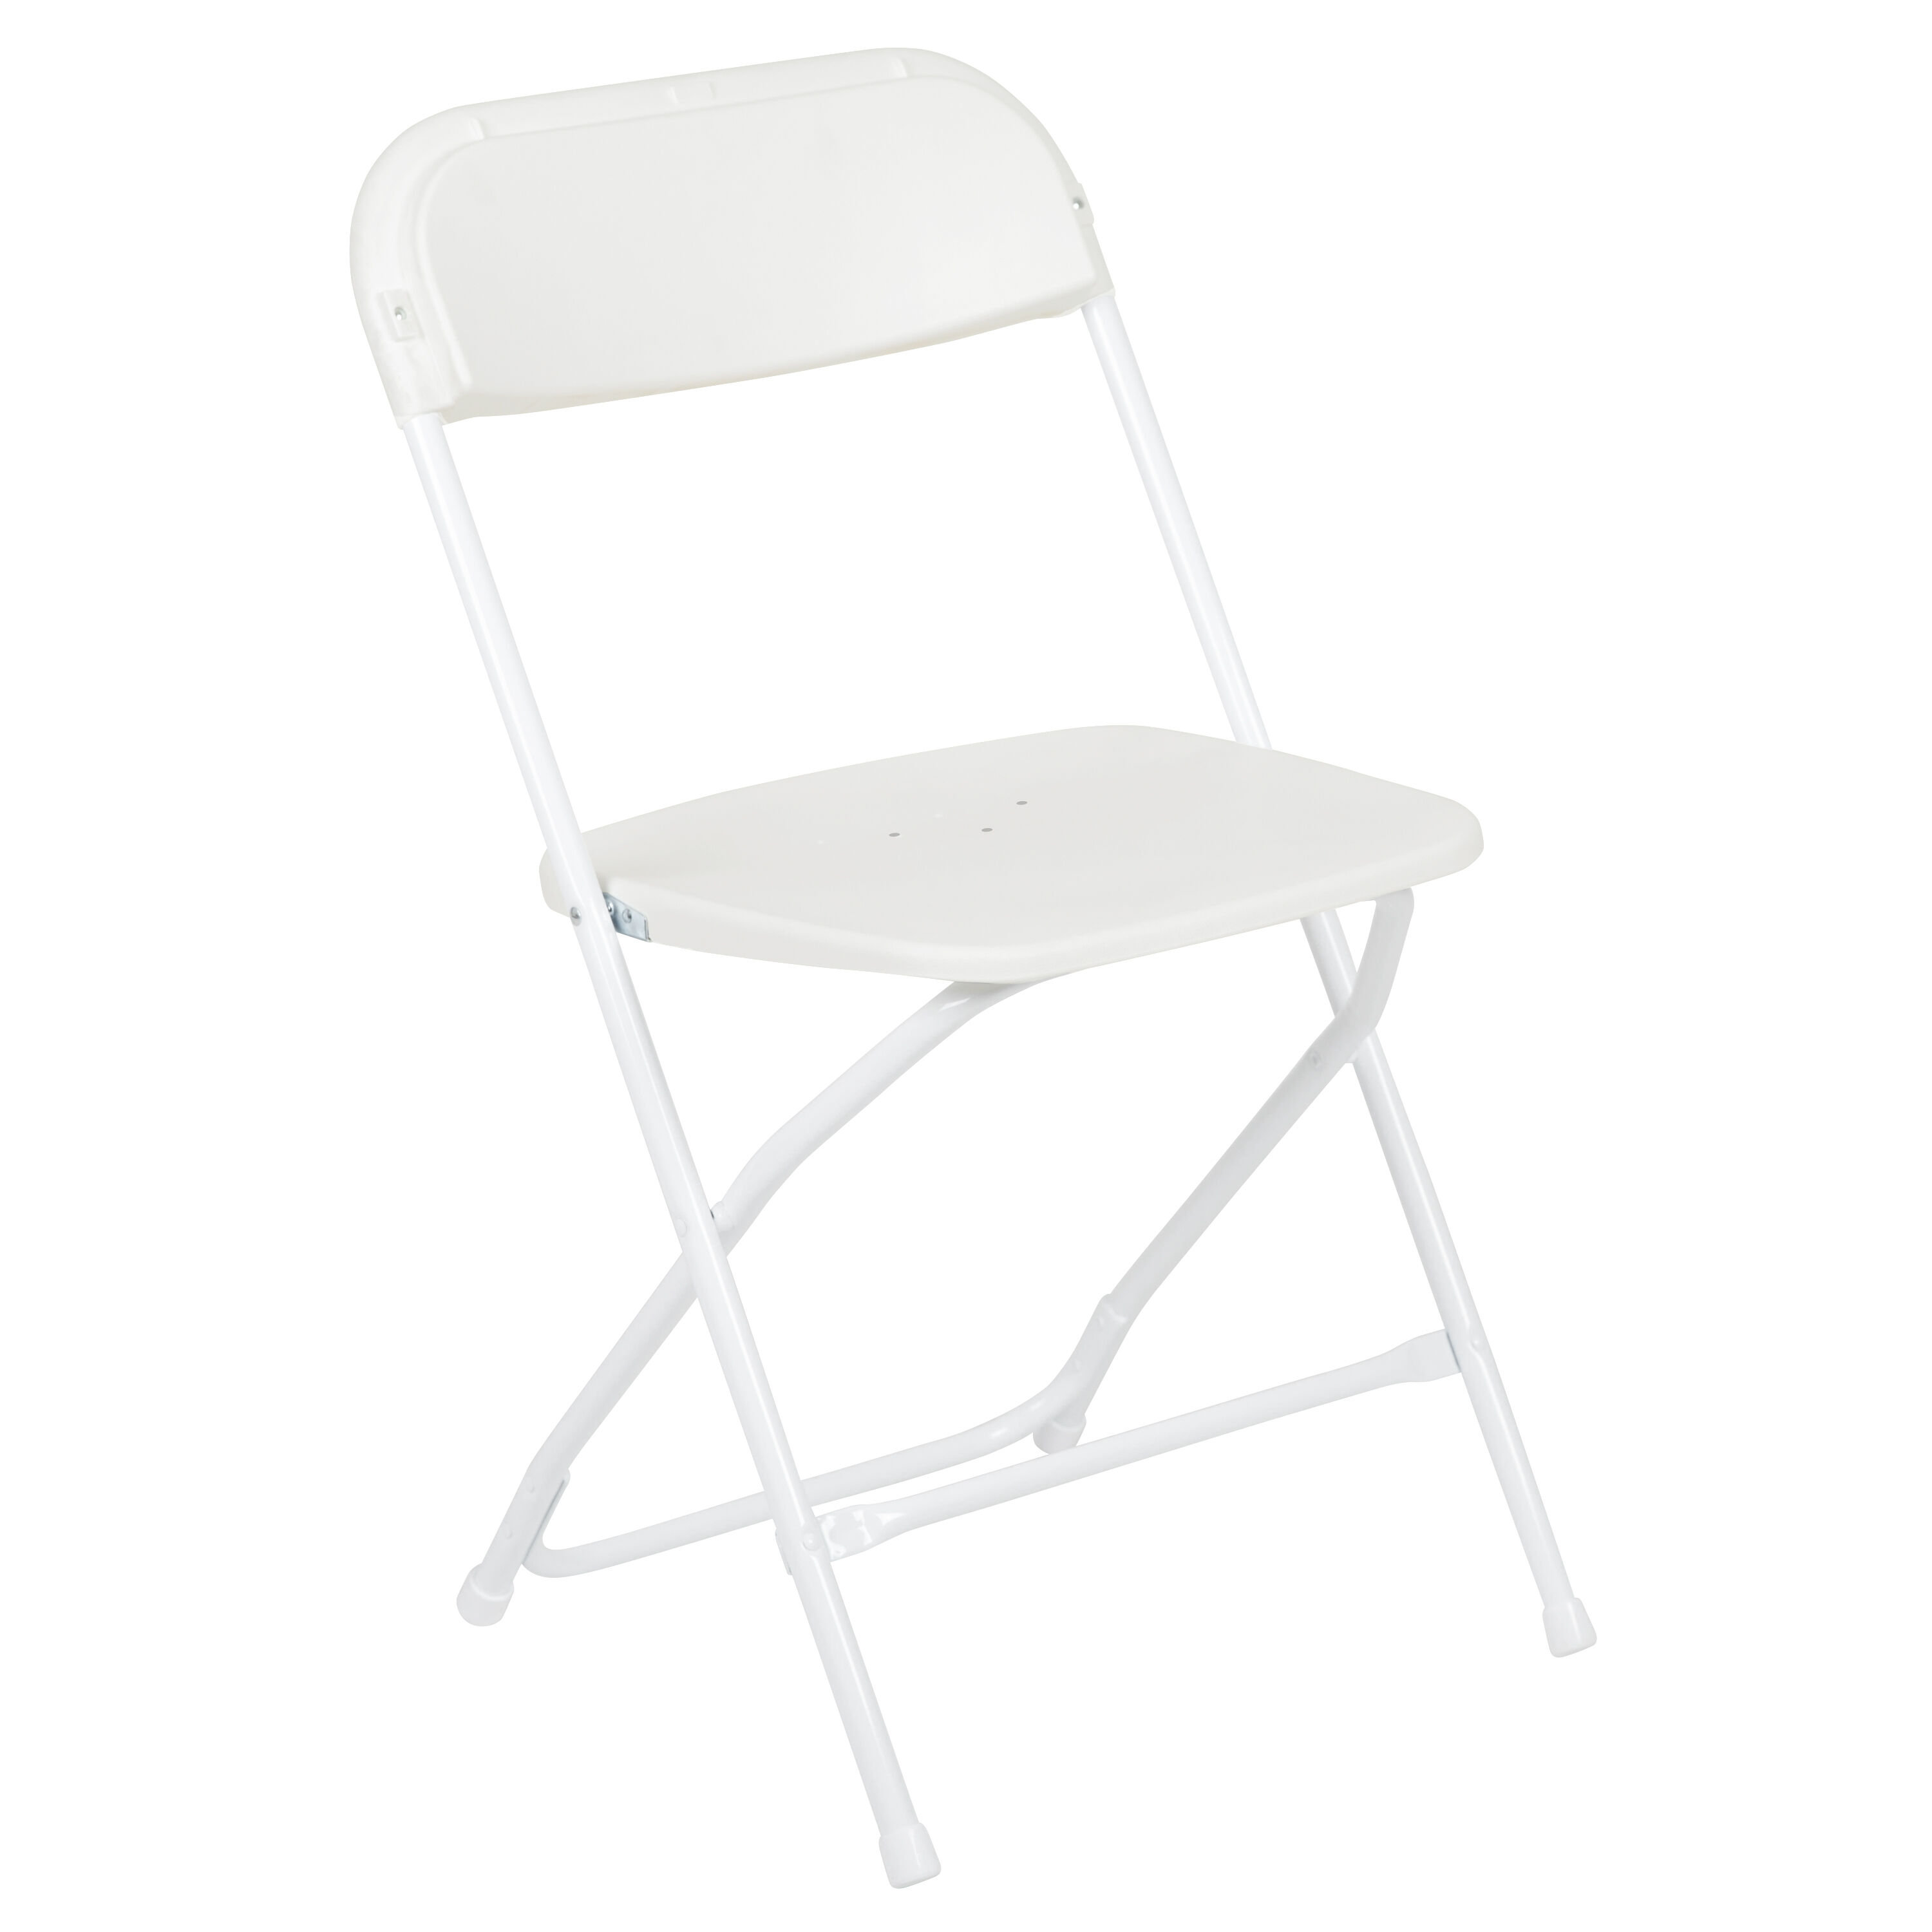 Cheap Outdoor Folding Chairs.Chairs Seating 650 Lbs Weight Capacity Commercial Quality